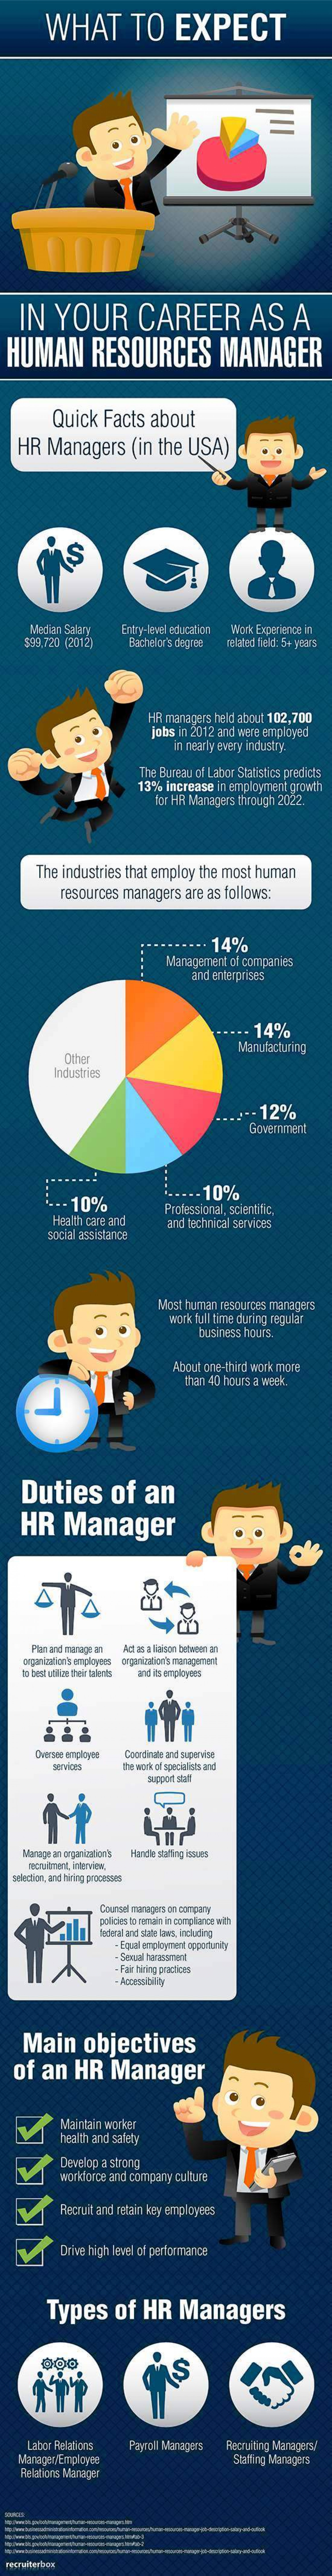 What to Expect in Your Career as a Human Resources Manager Infographic